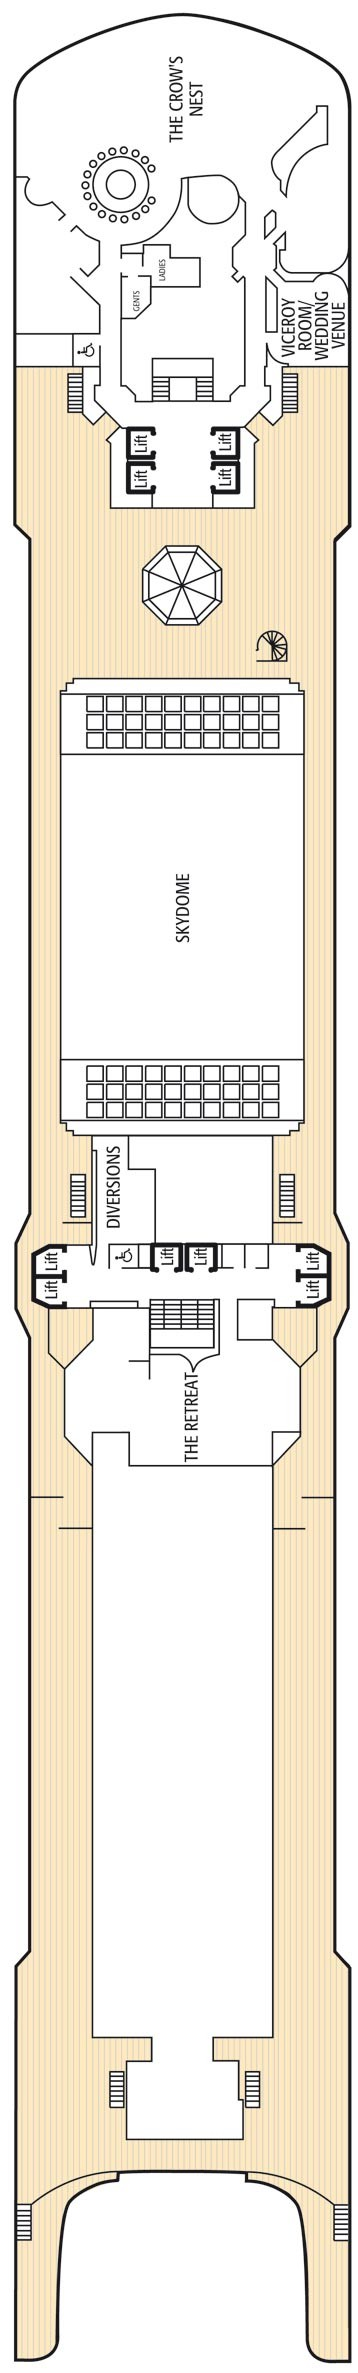 Sun deck deck plan for Arcadia deck plans